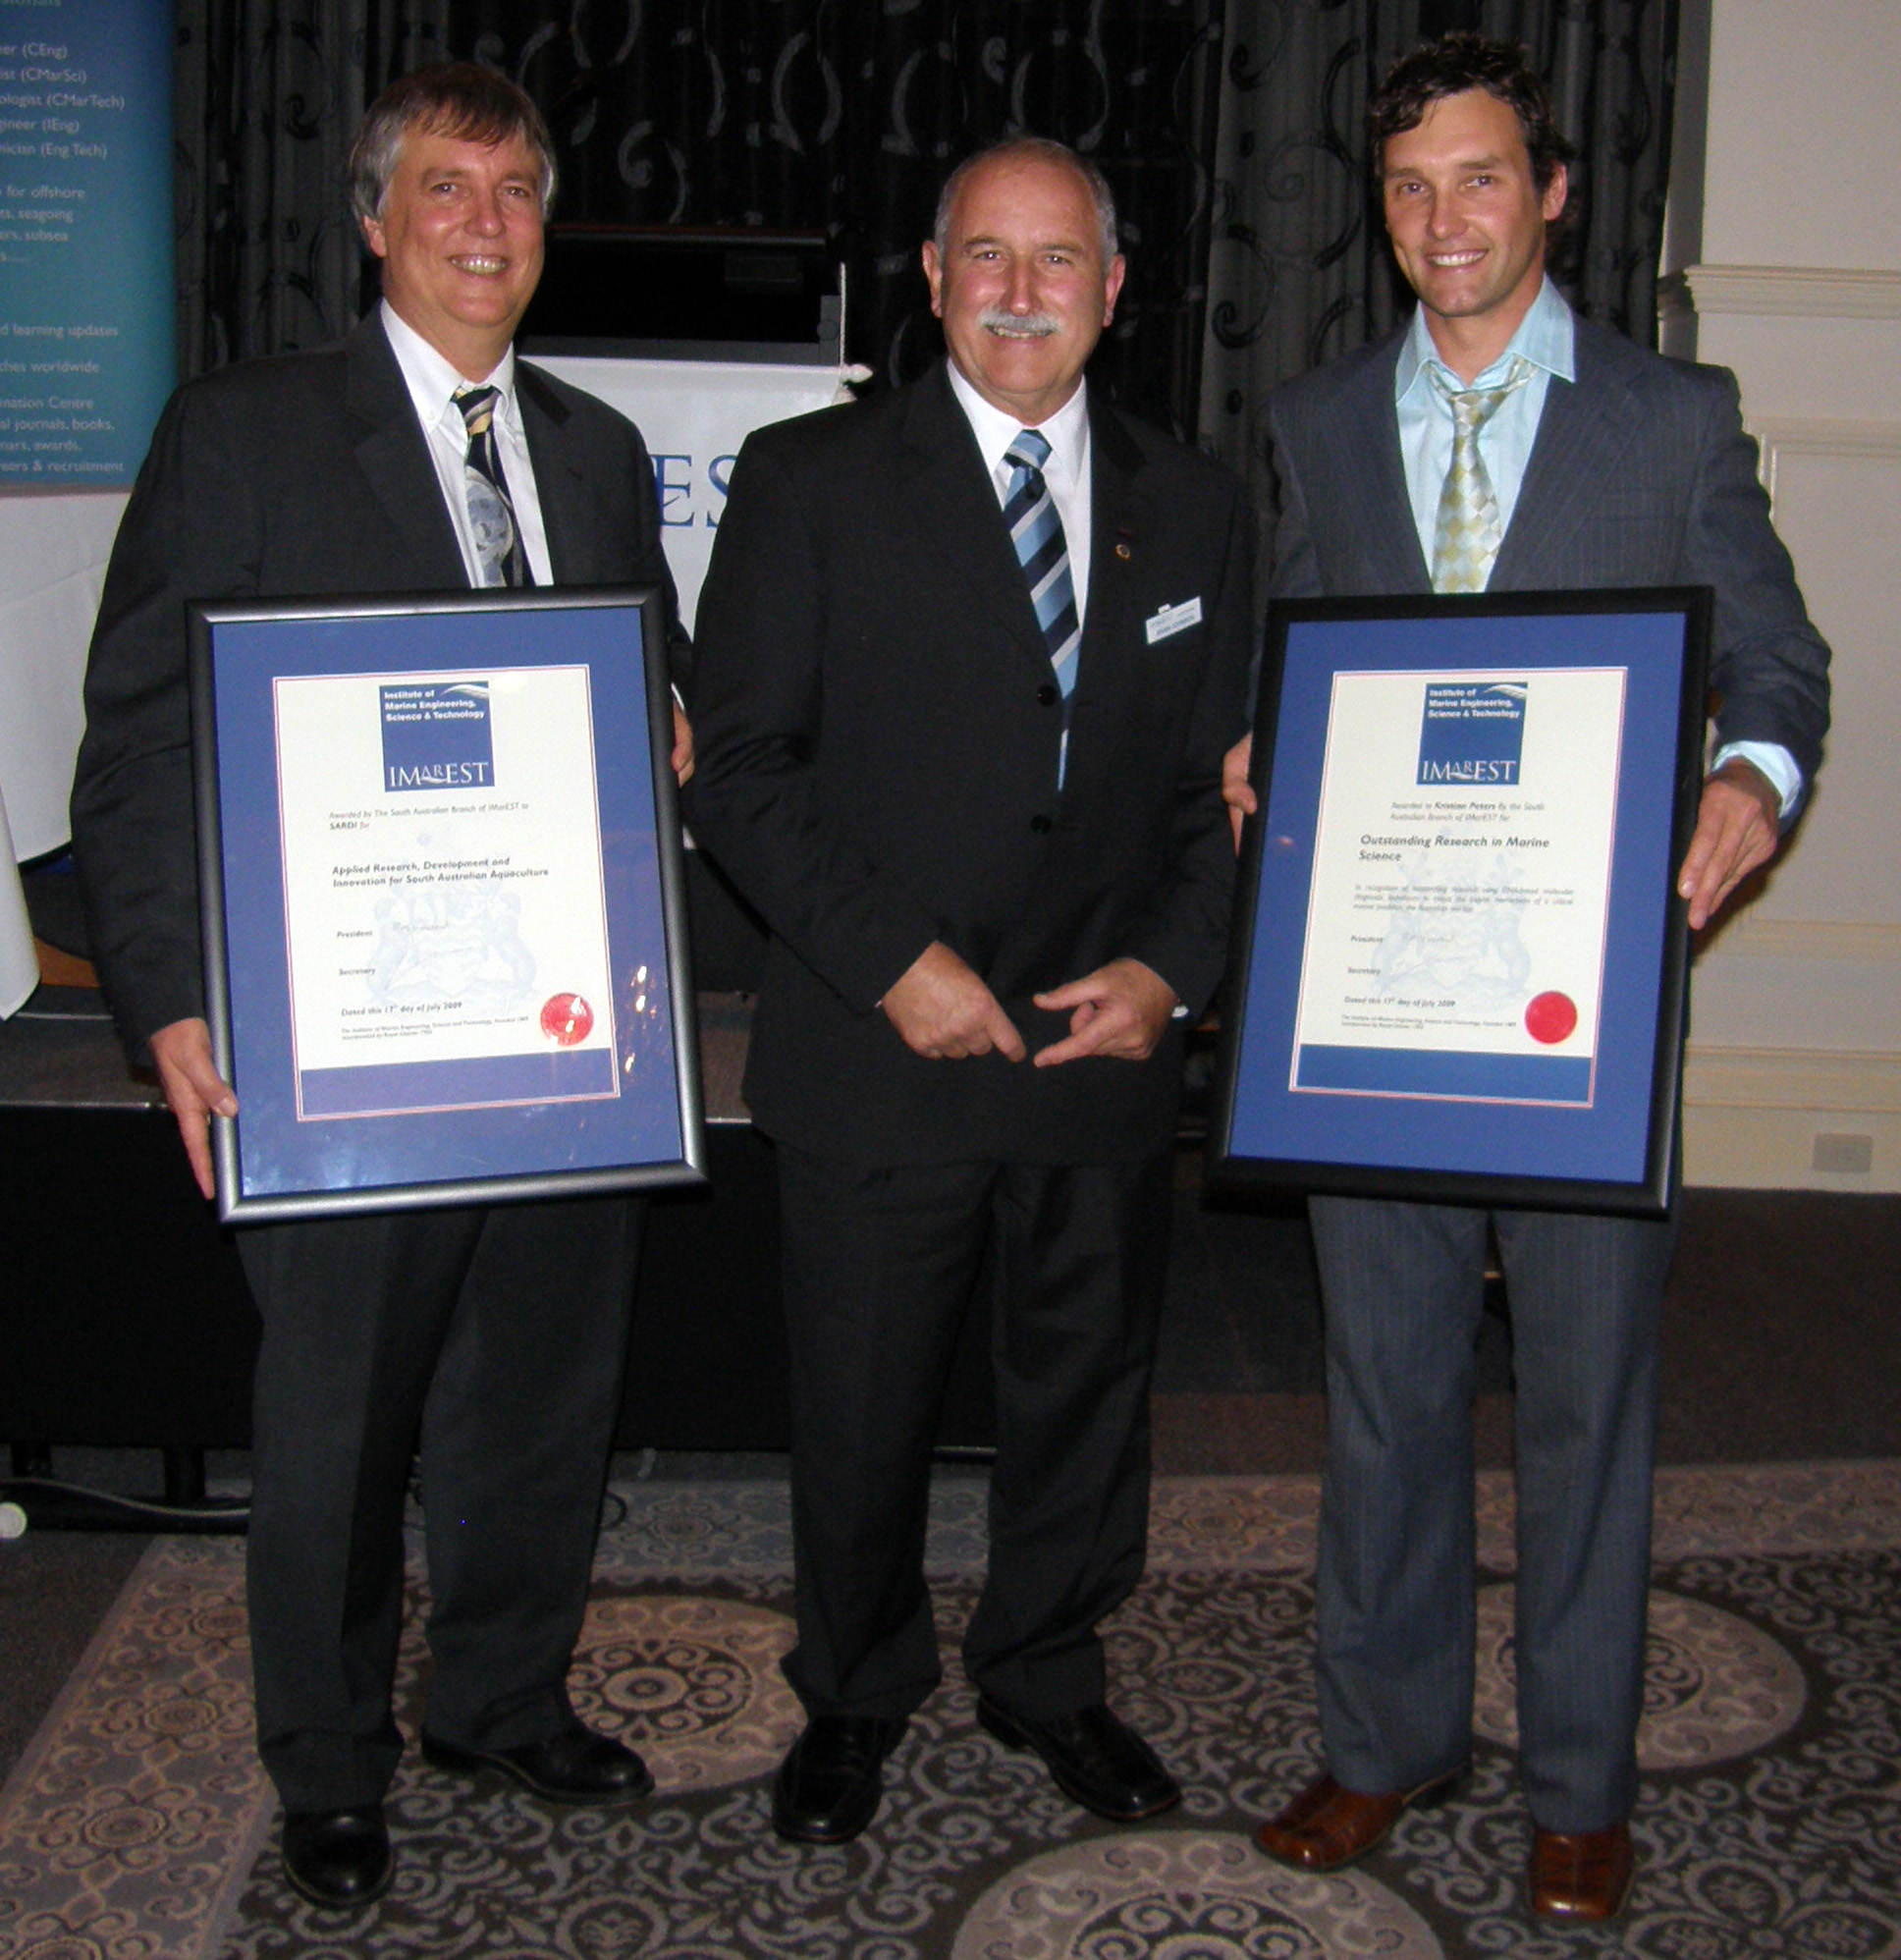 Steven Clarke and Kristian Peters accept IMarEST awards